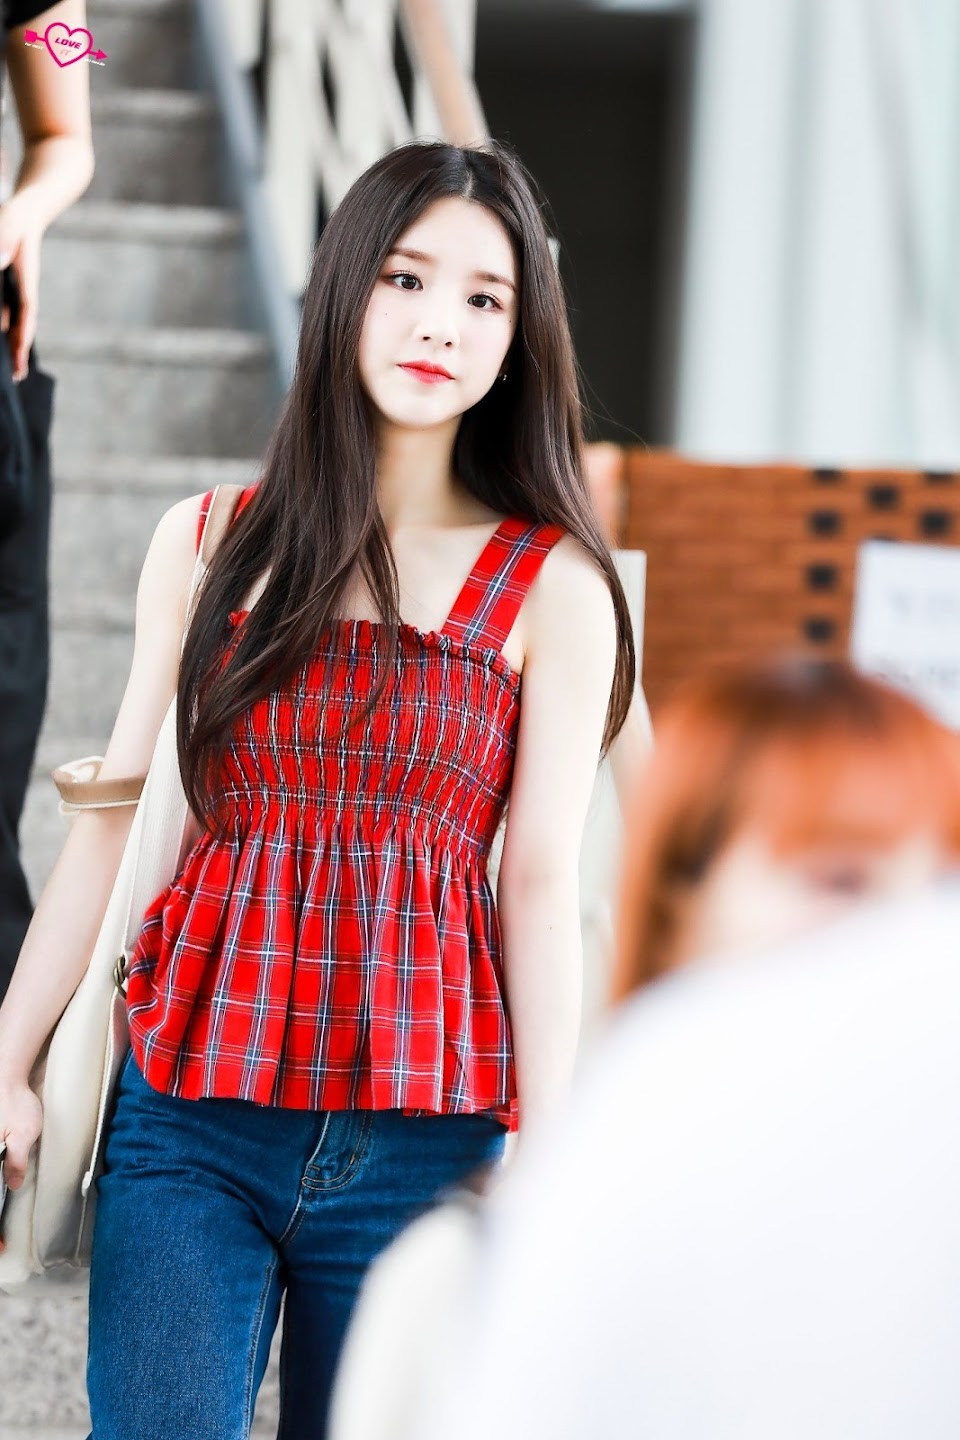 heejin plaid 22